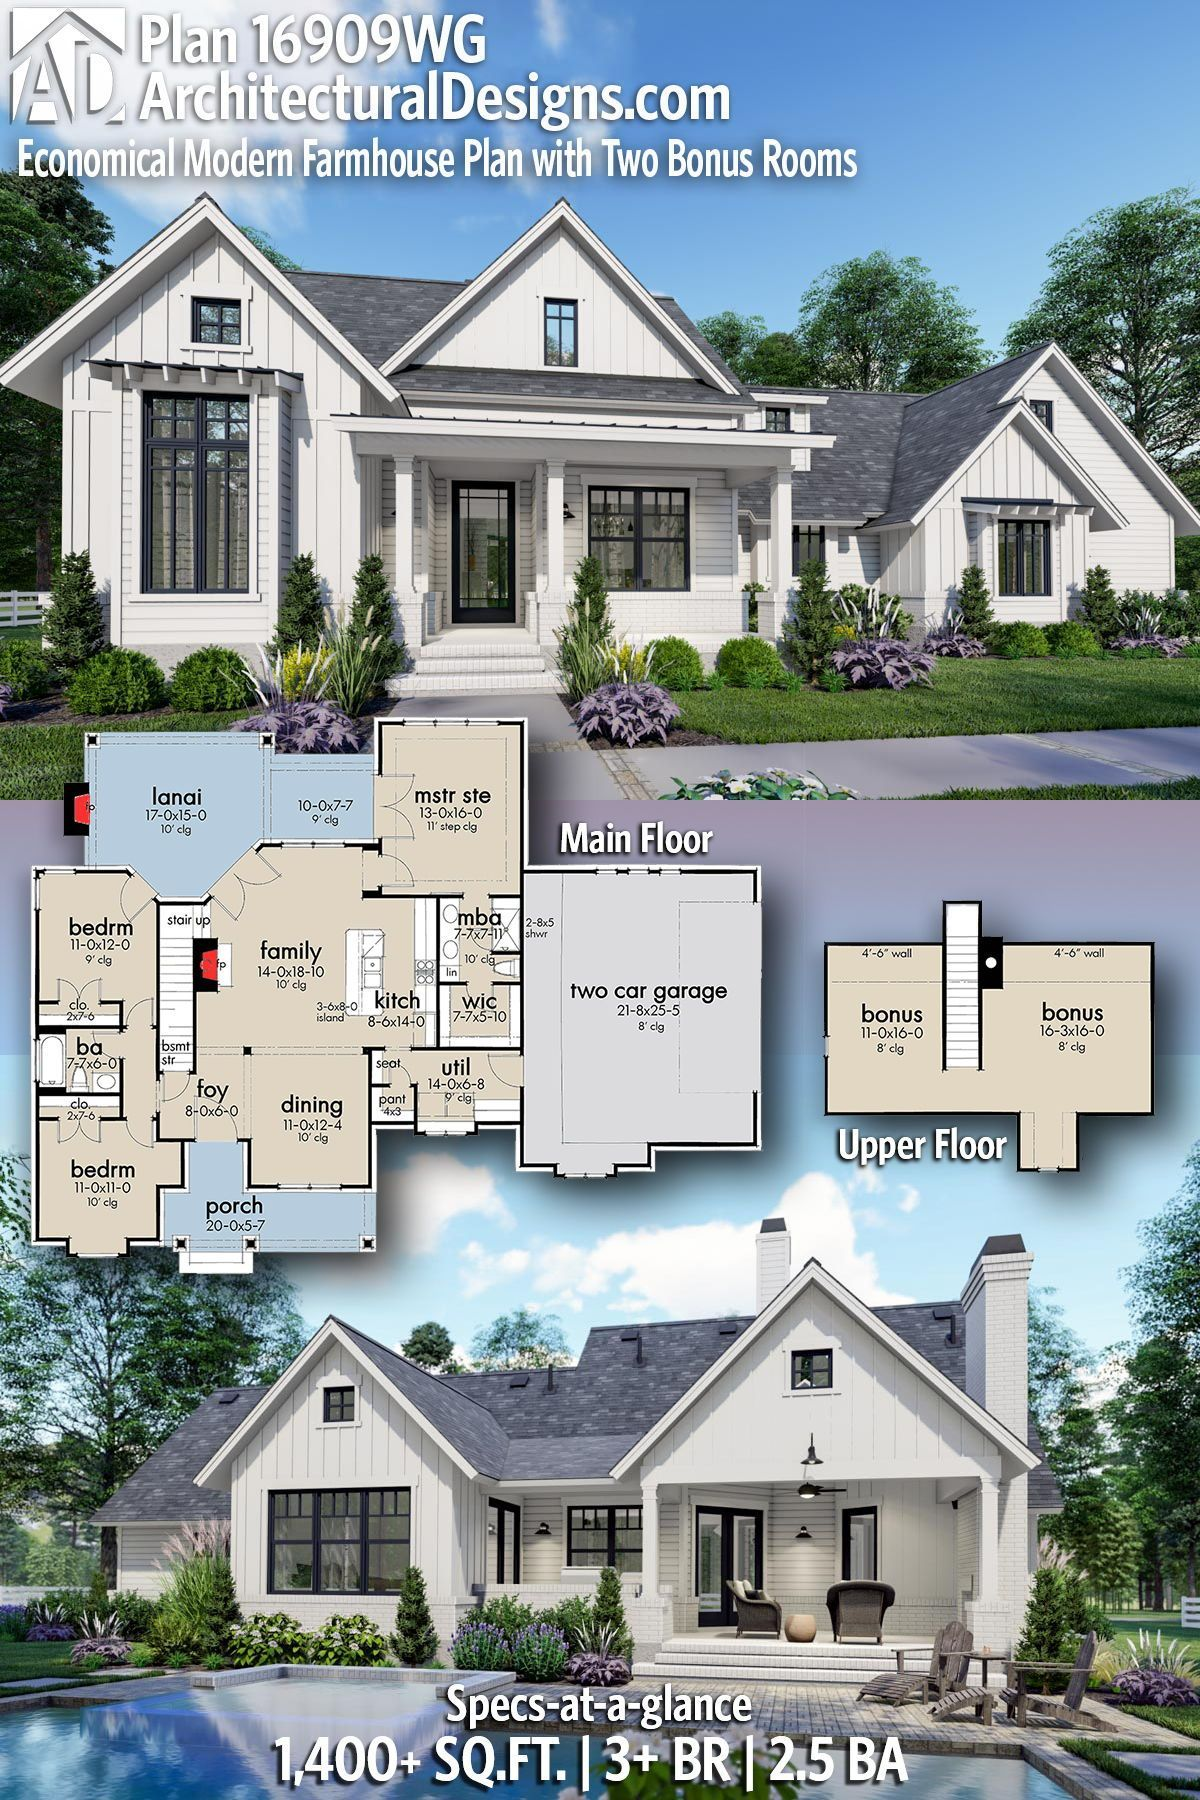 1 Story Modern Farmhouse Plan in 2020 (With images ...